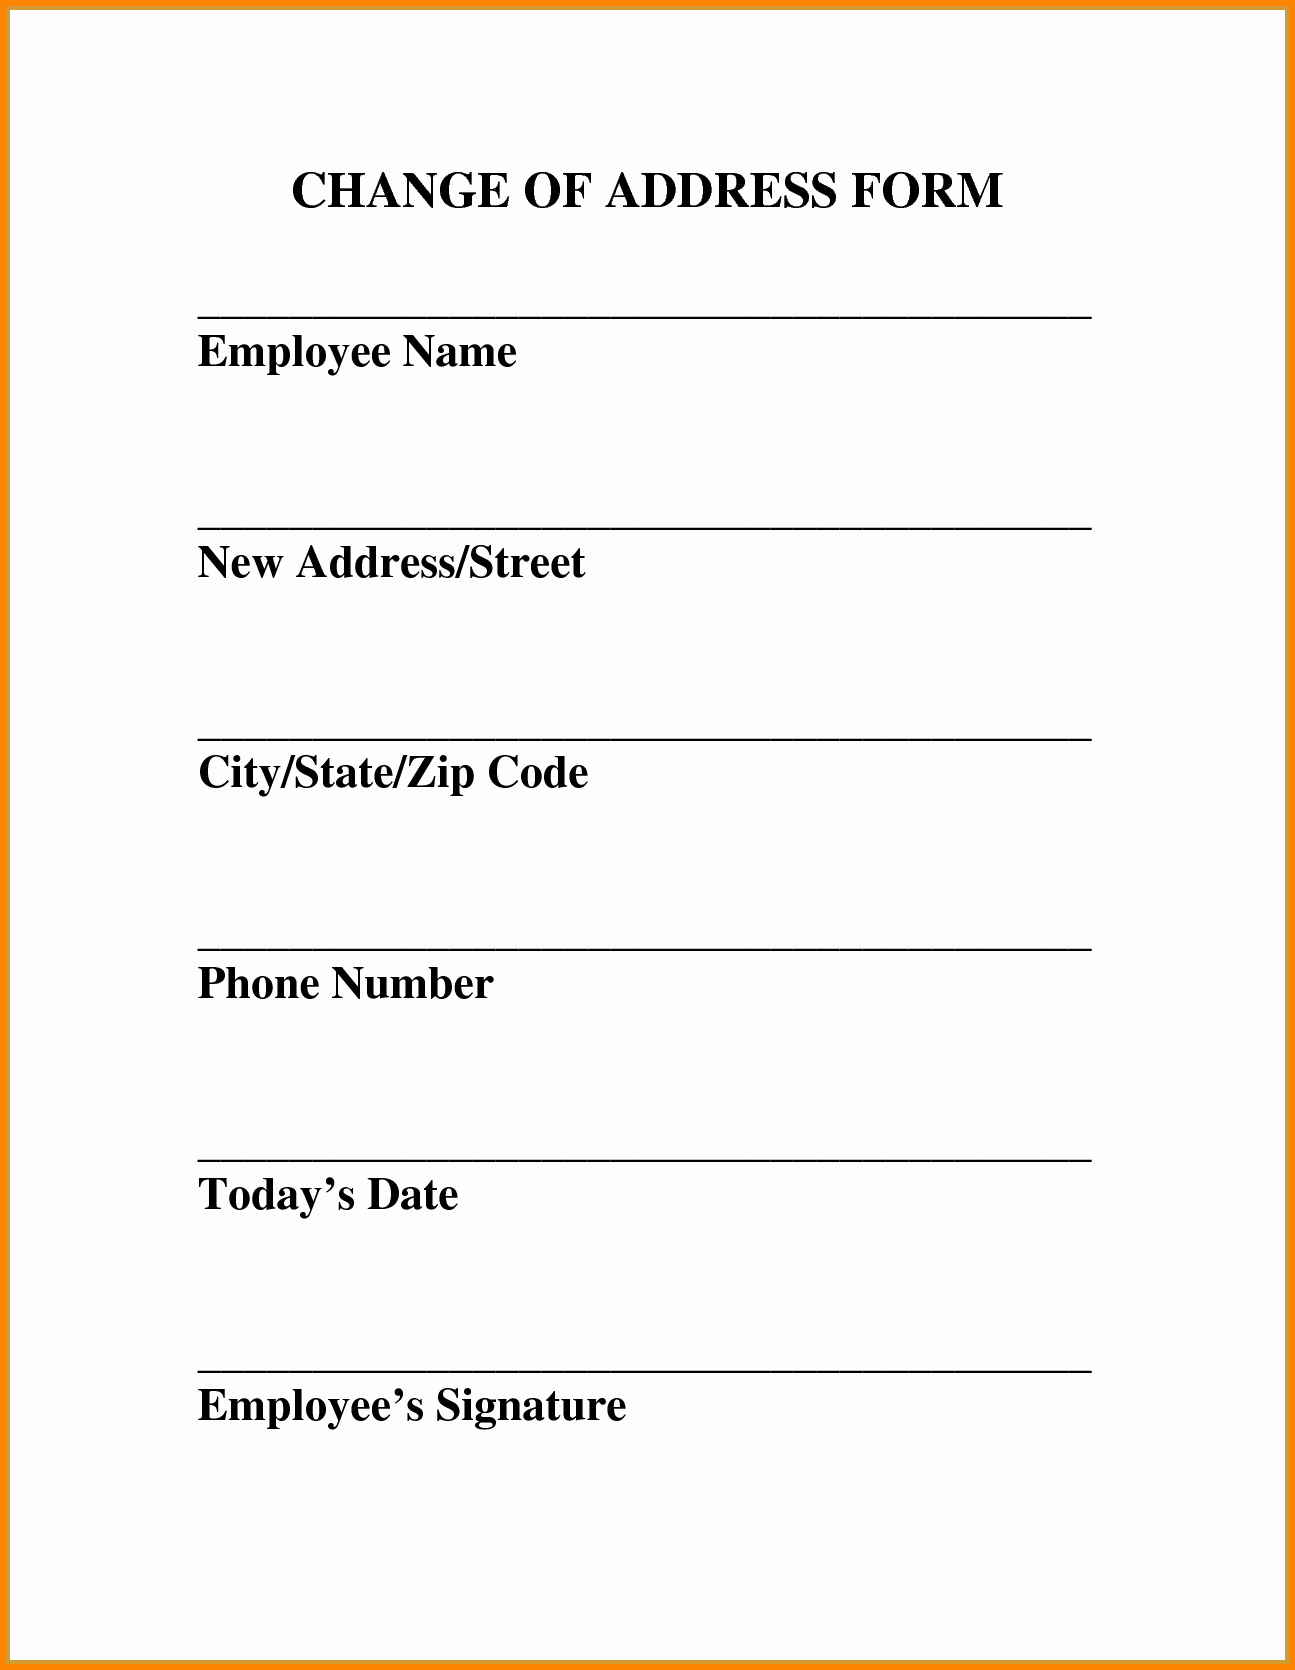 Name and Address Template Awesome Name and Address Template Portablegasgrillweber